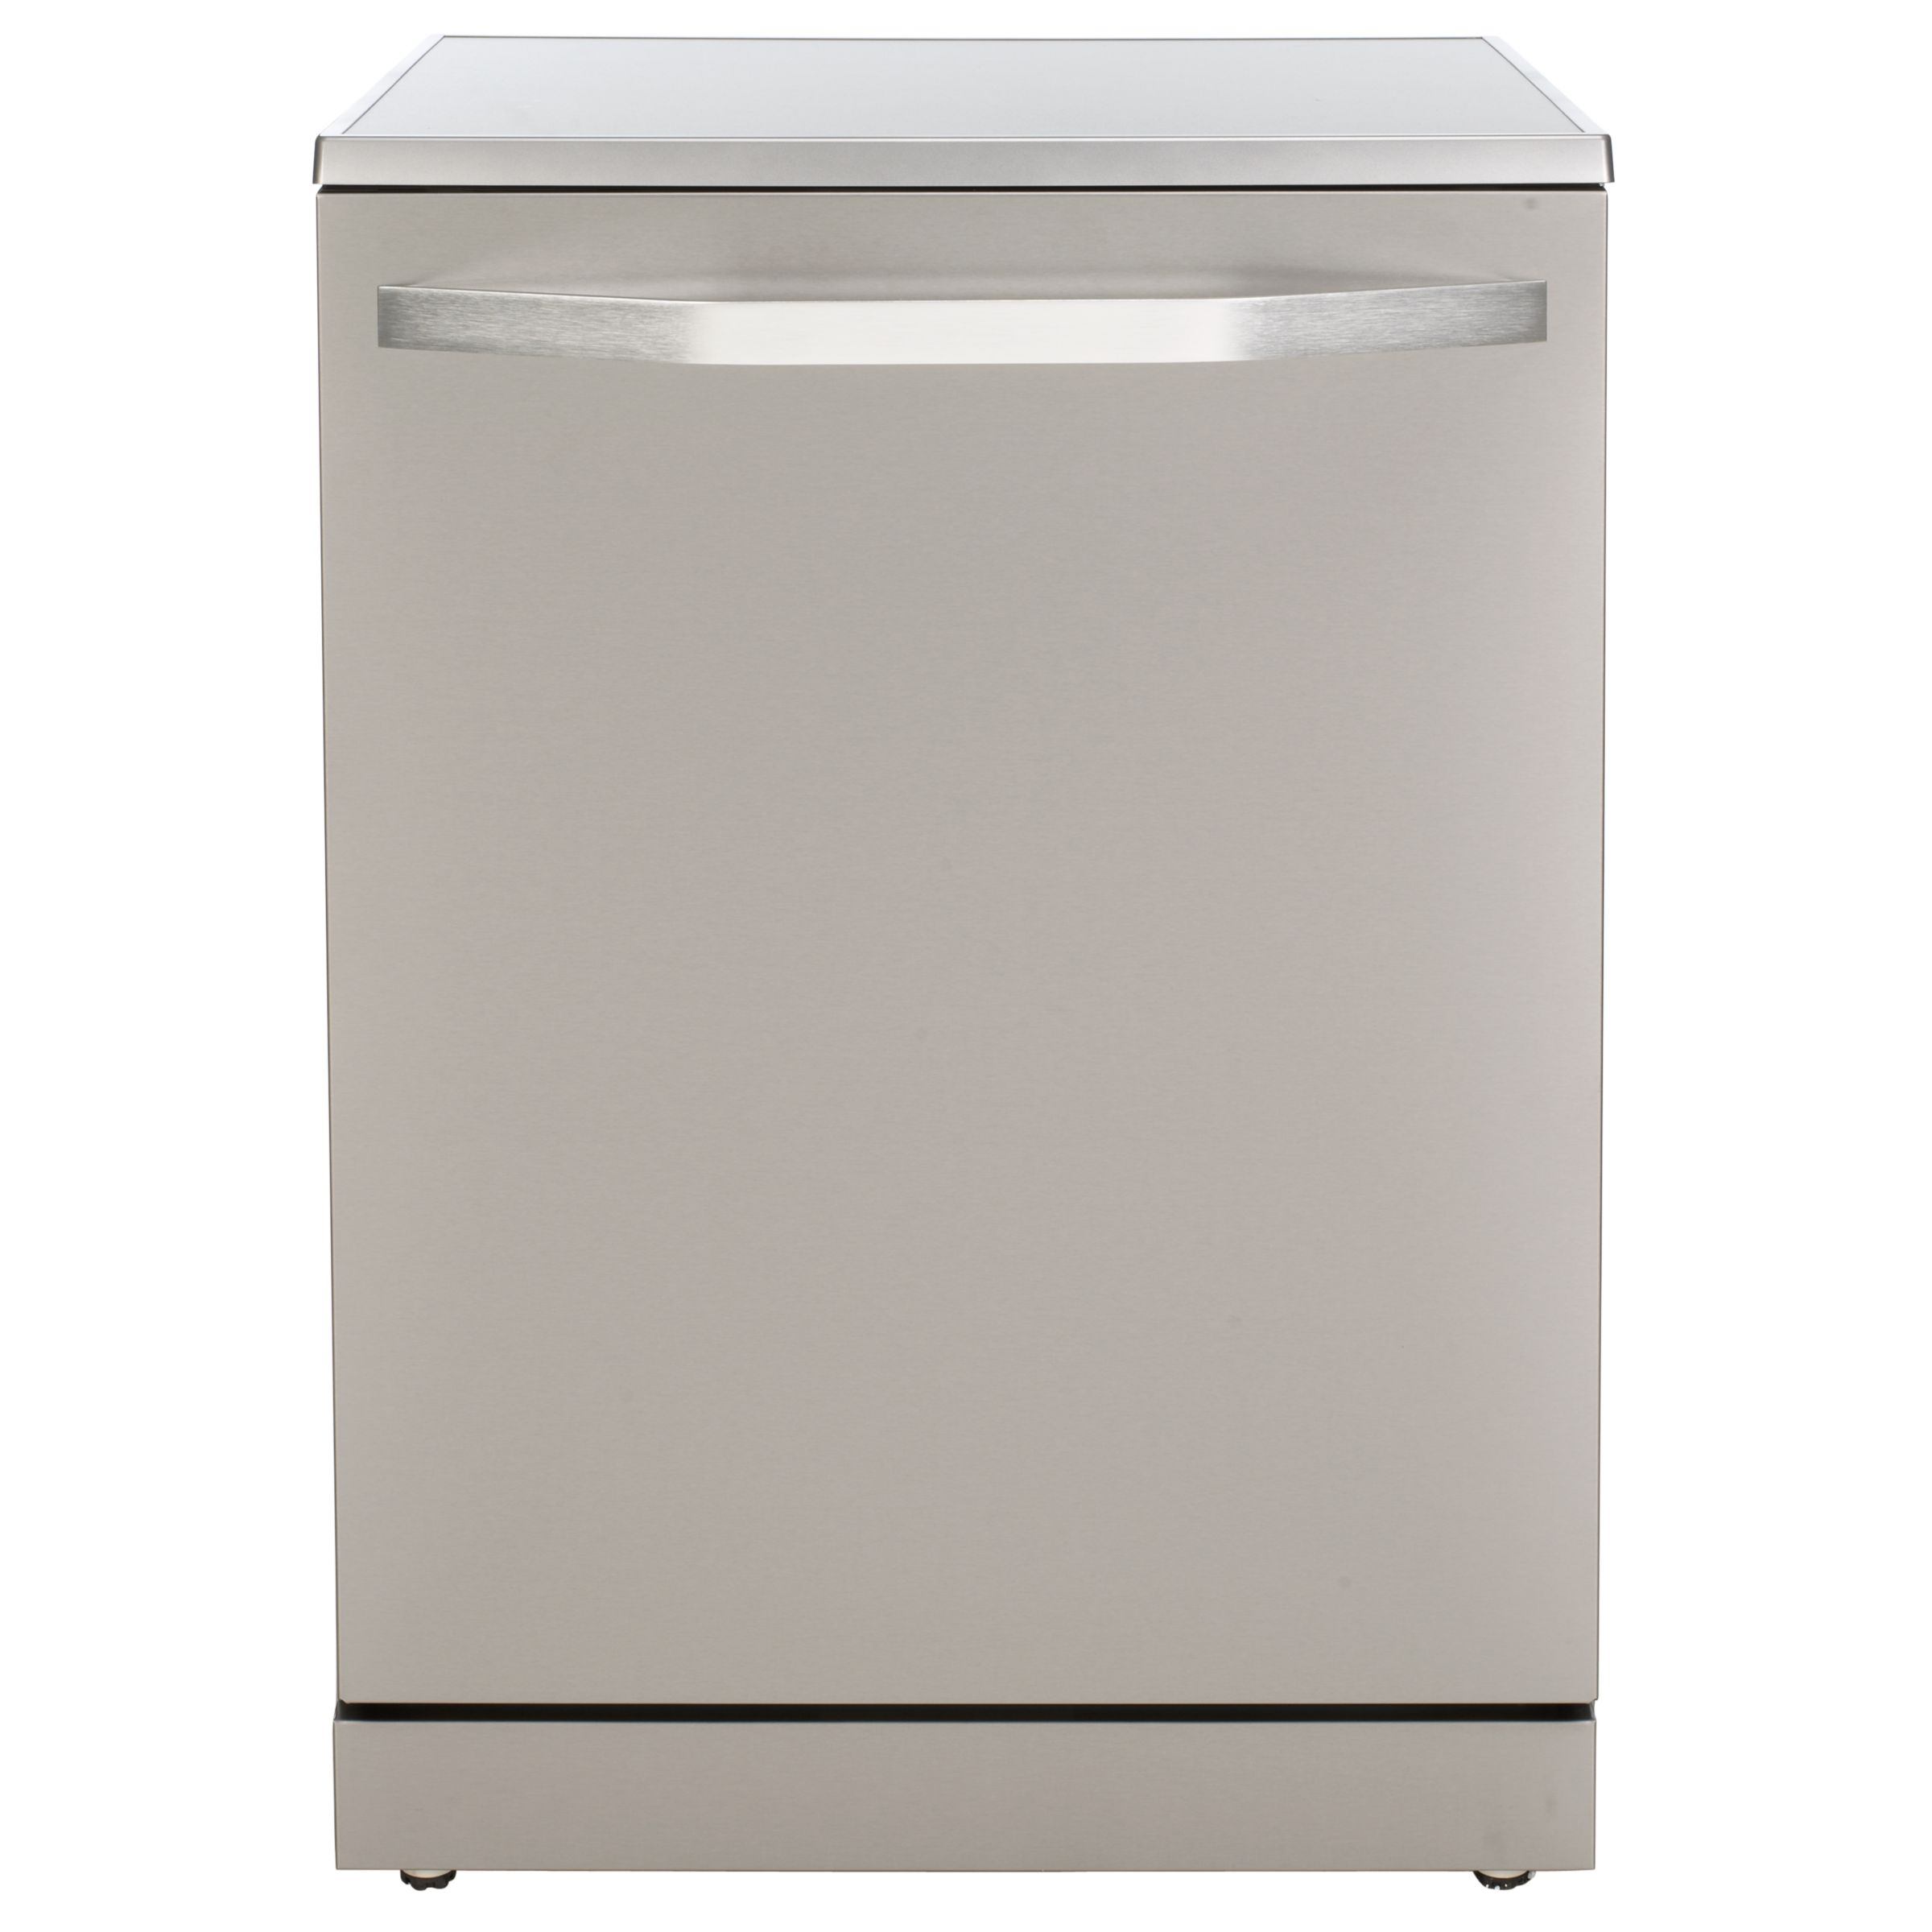 Buy Cheap John Lewis Dishwasher Compare Cookware